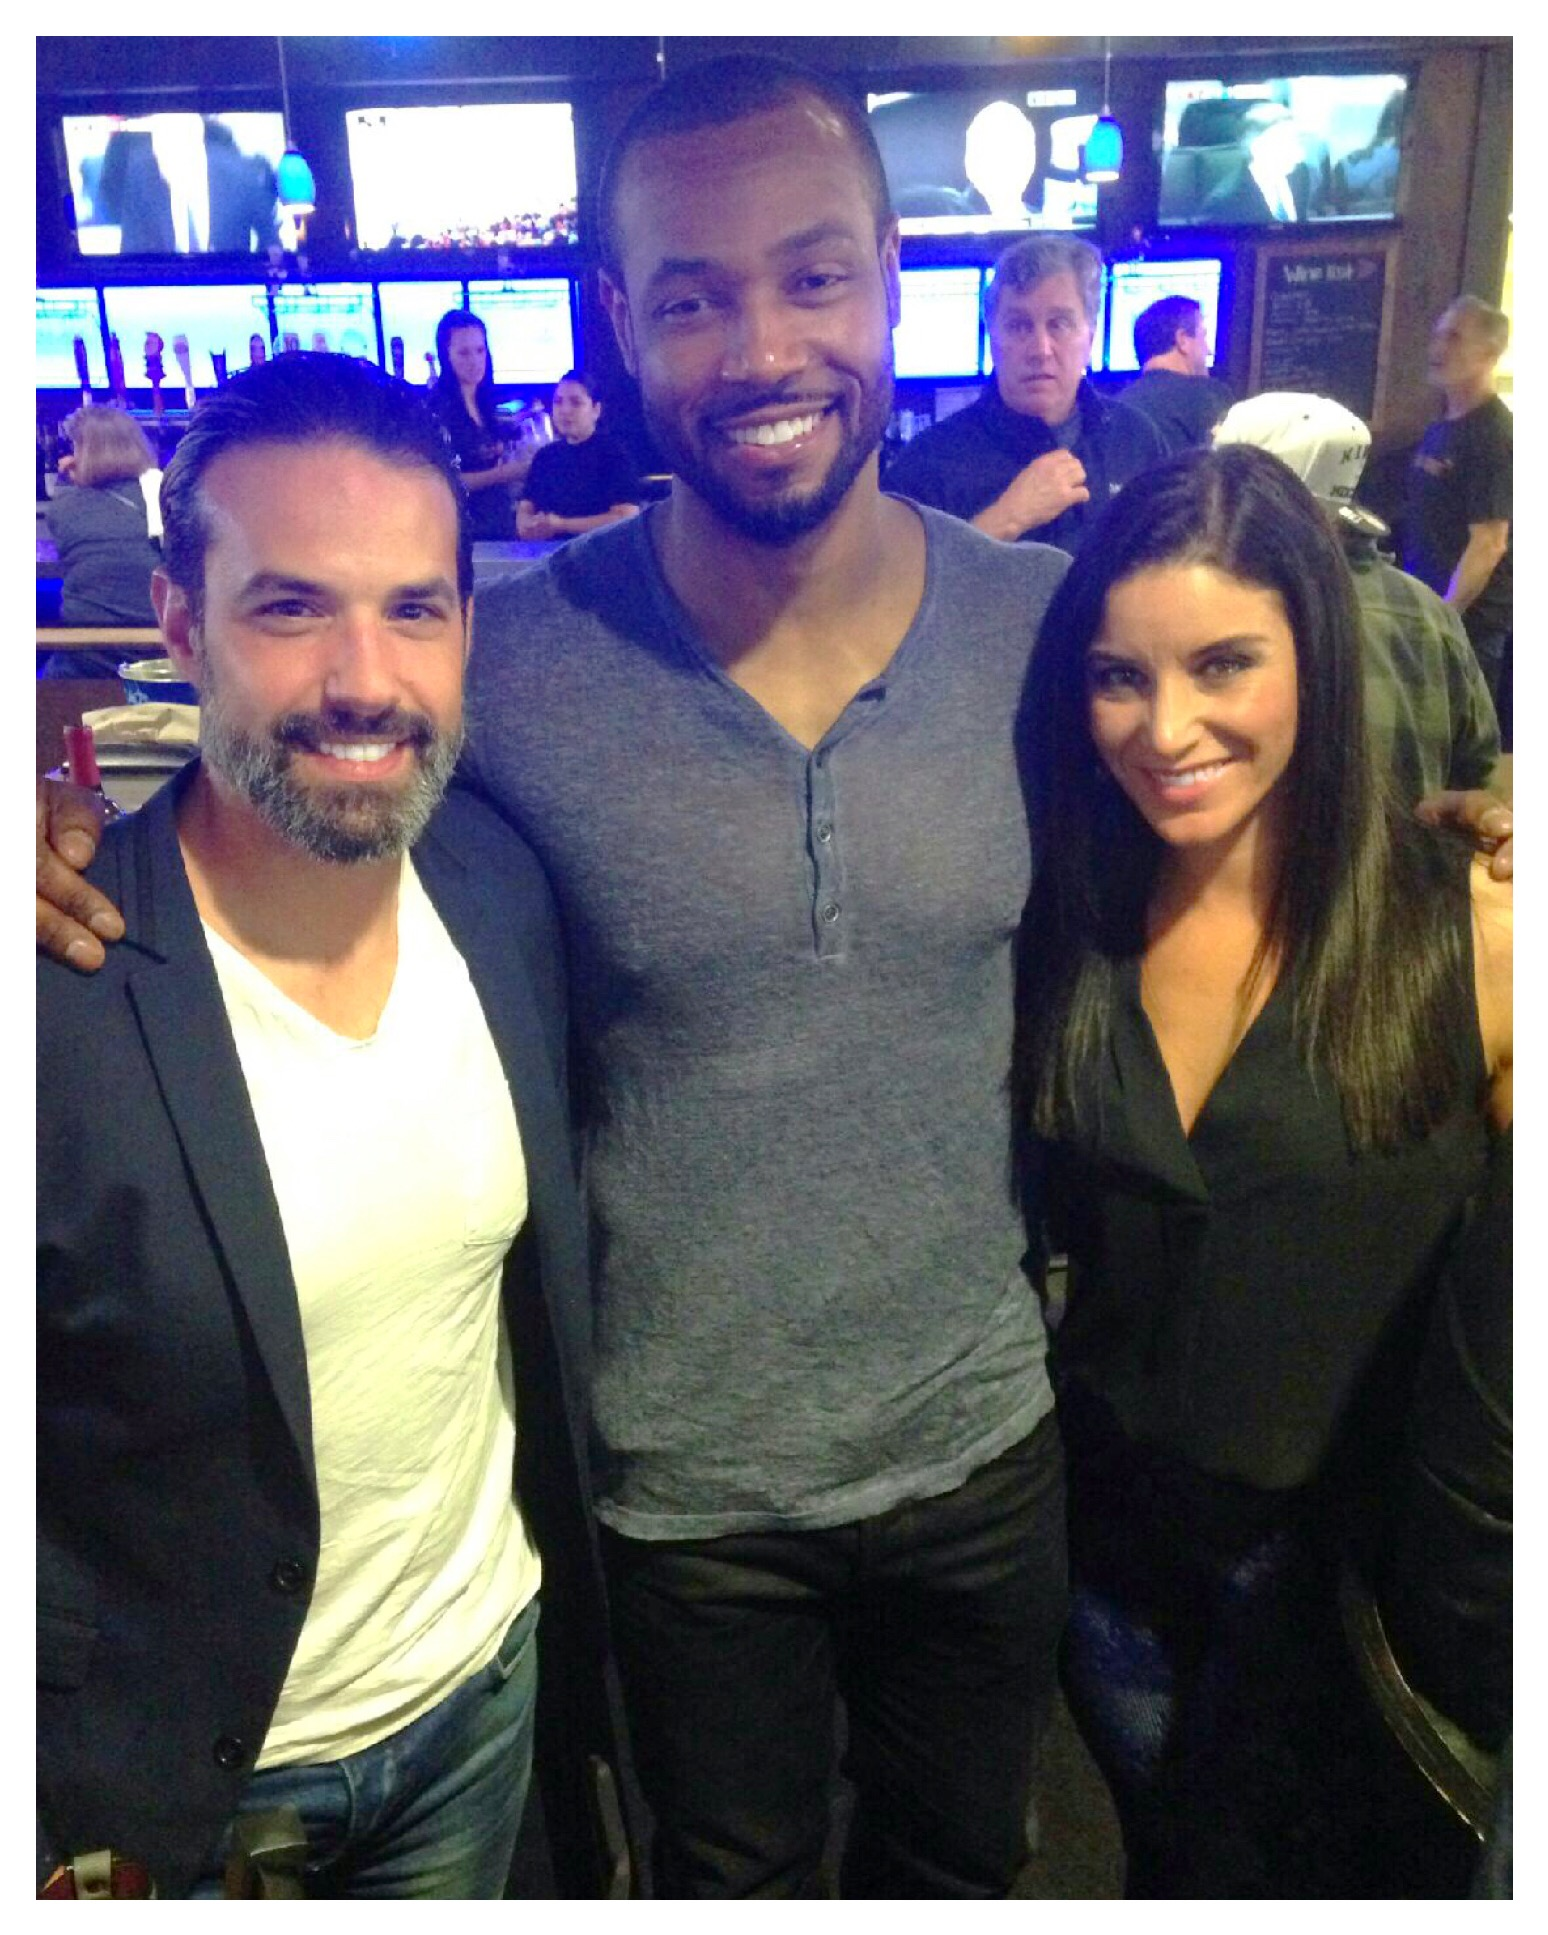 In photo Left to Right: Chris Ferraro - Retired NHL athlete who notably played for the NY Rangers with his twin brother Peter! Isaiah Mustafa - Actor and former NFL practice squad athlete who is the face of Old Spice Commercials! Me -You know me already.